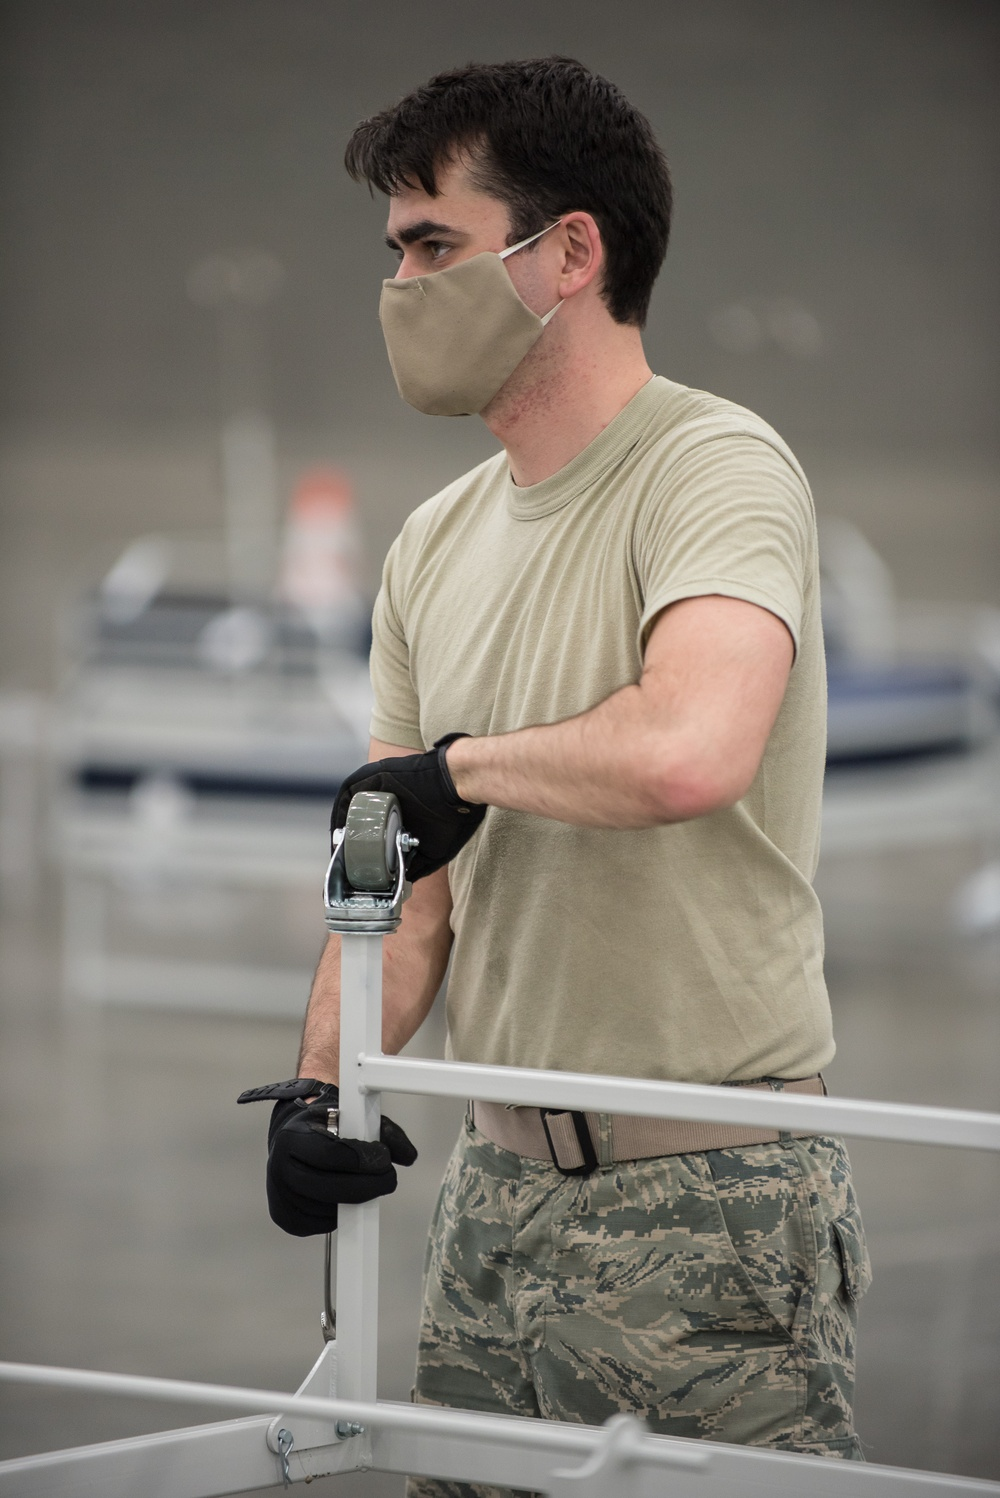 Ky. Guard sets up Alternate Care Facility for COVID-19